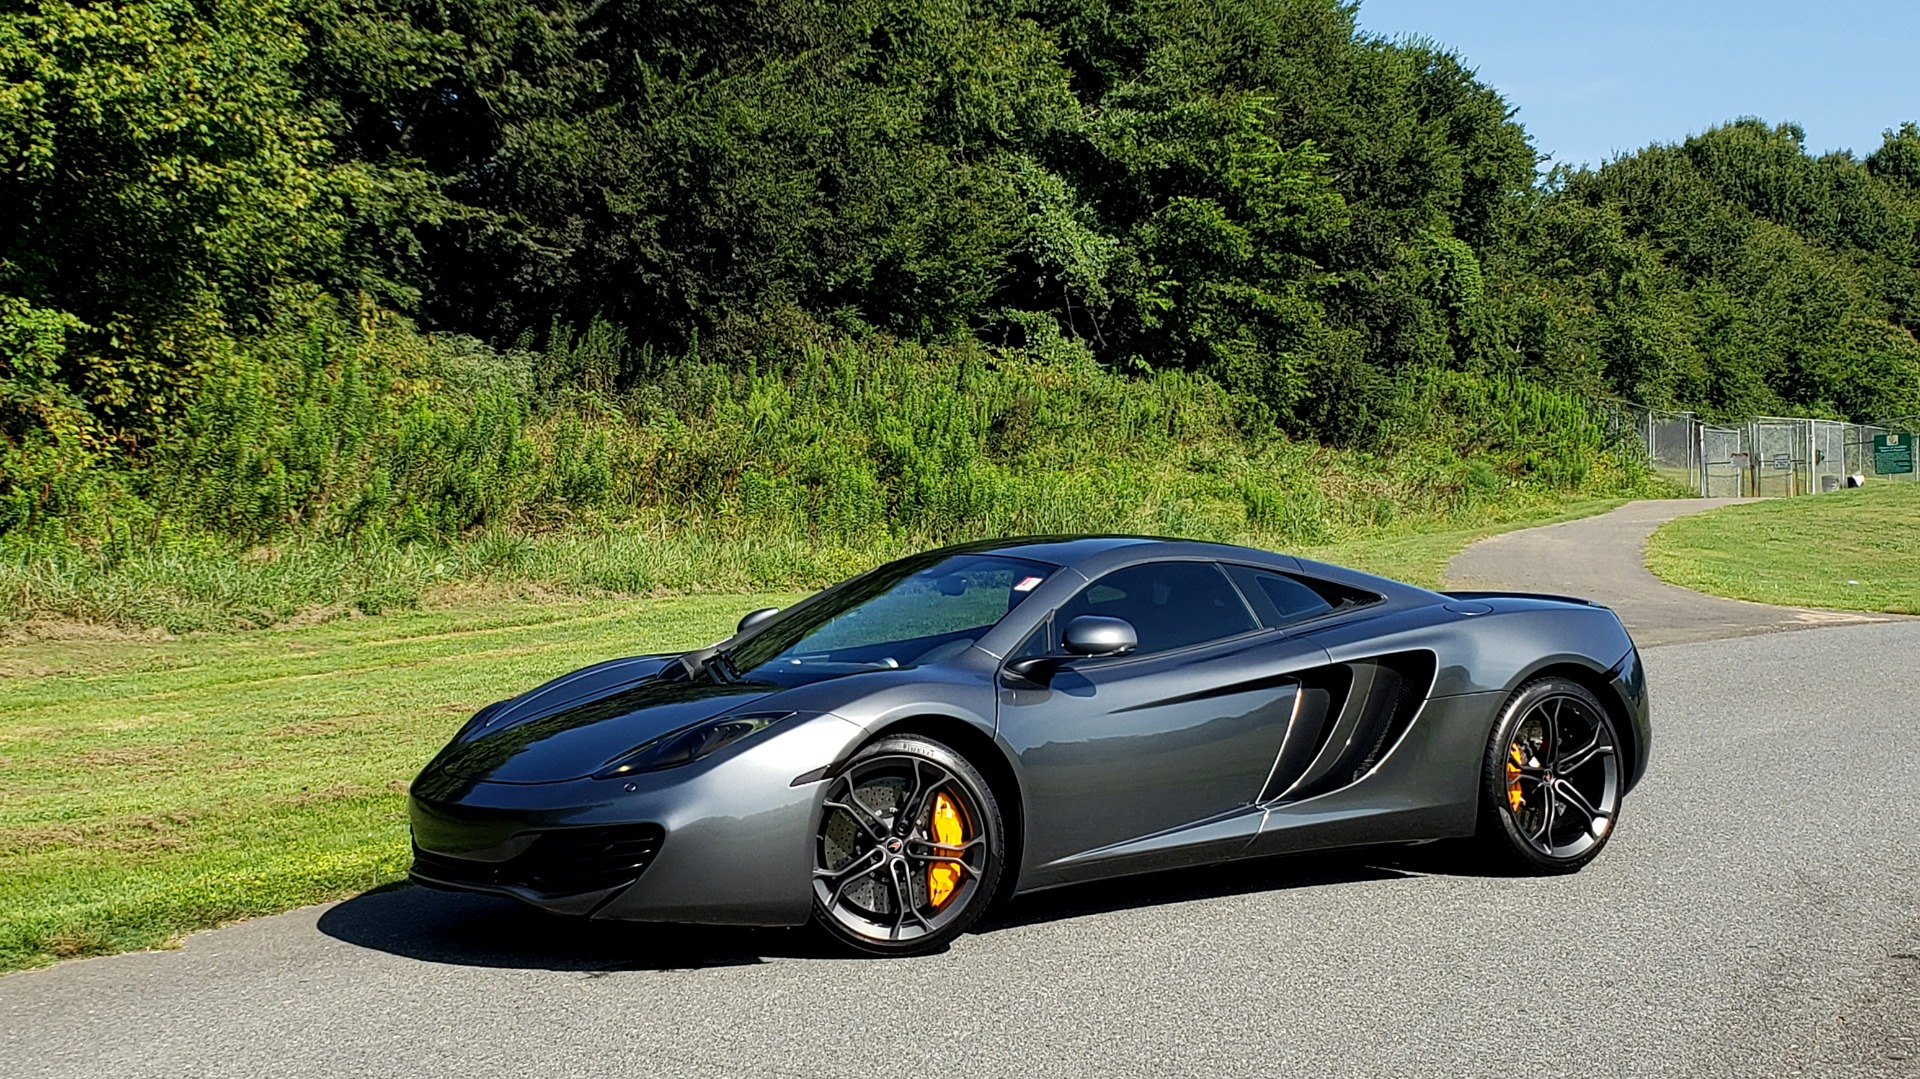 Used 2012 McLaren MP4-12C COUPE / 3.8 L V8 592HP / AUTO / NAV / CCB / LOW MILES for sale $97,999 at Formula Imports in Charlotte NC 28227 7